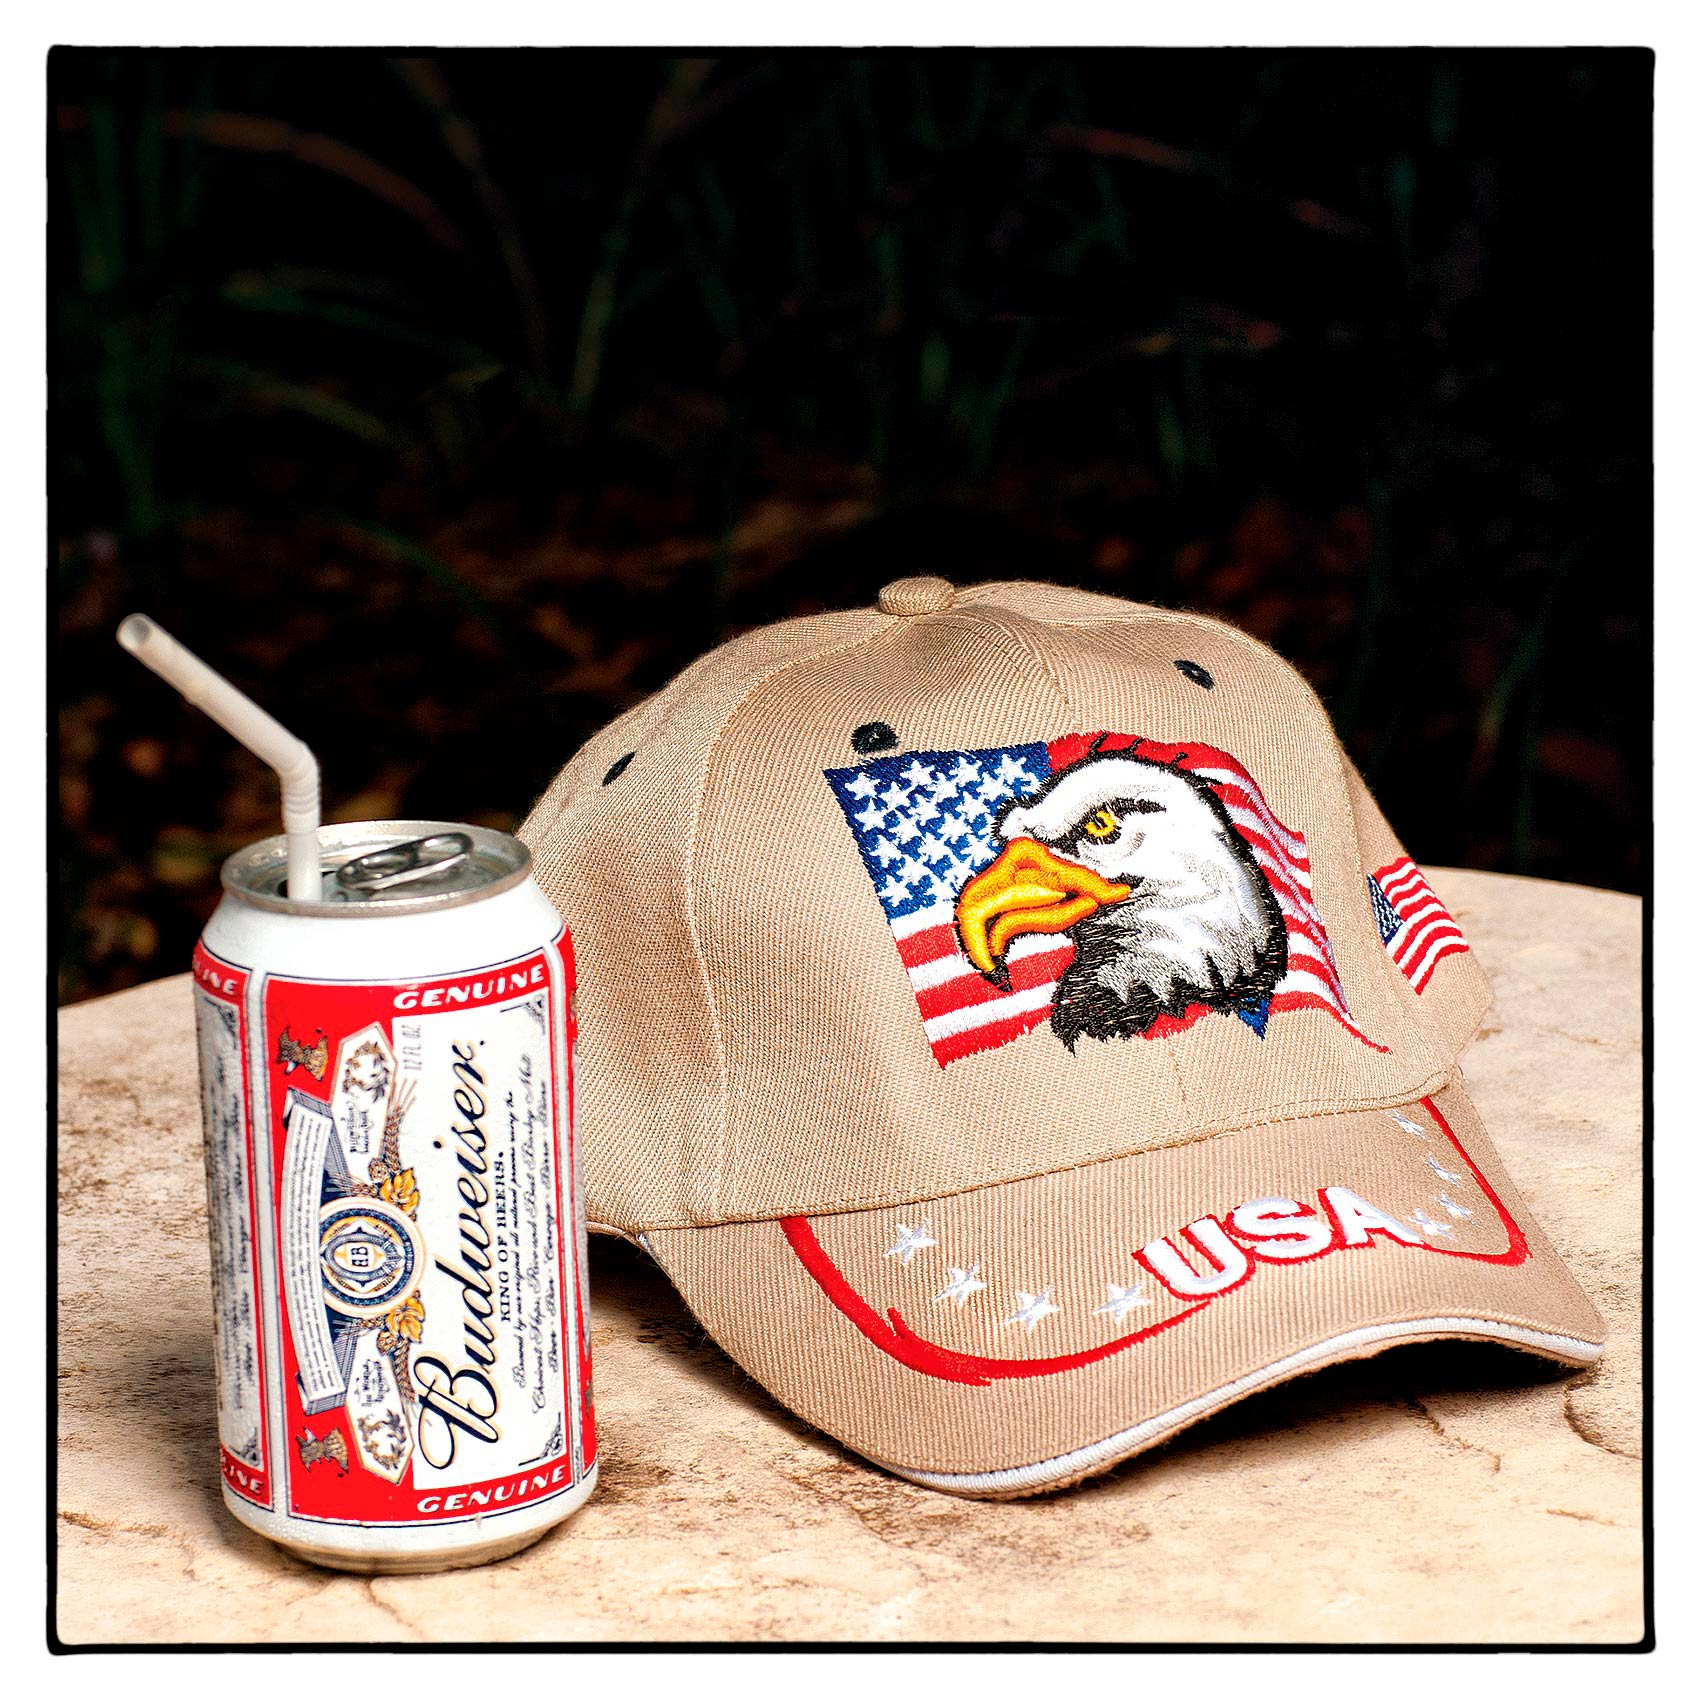 a-budweiser-beer-can-and-a-ball-cap-with-a-us-flag-and-eagle-sit-on-a-hotel-table-in-florida